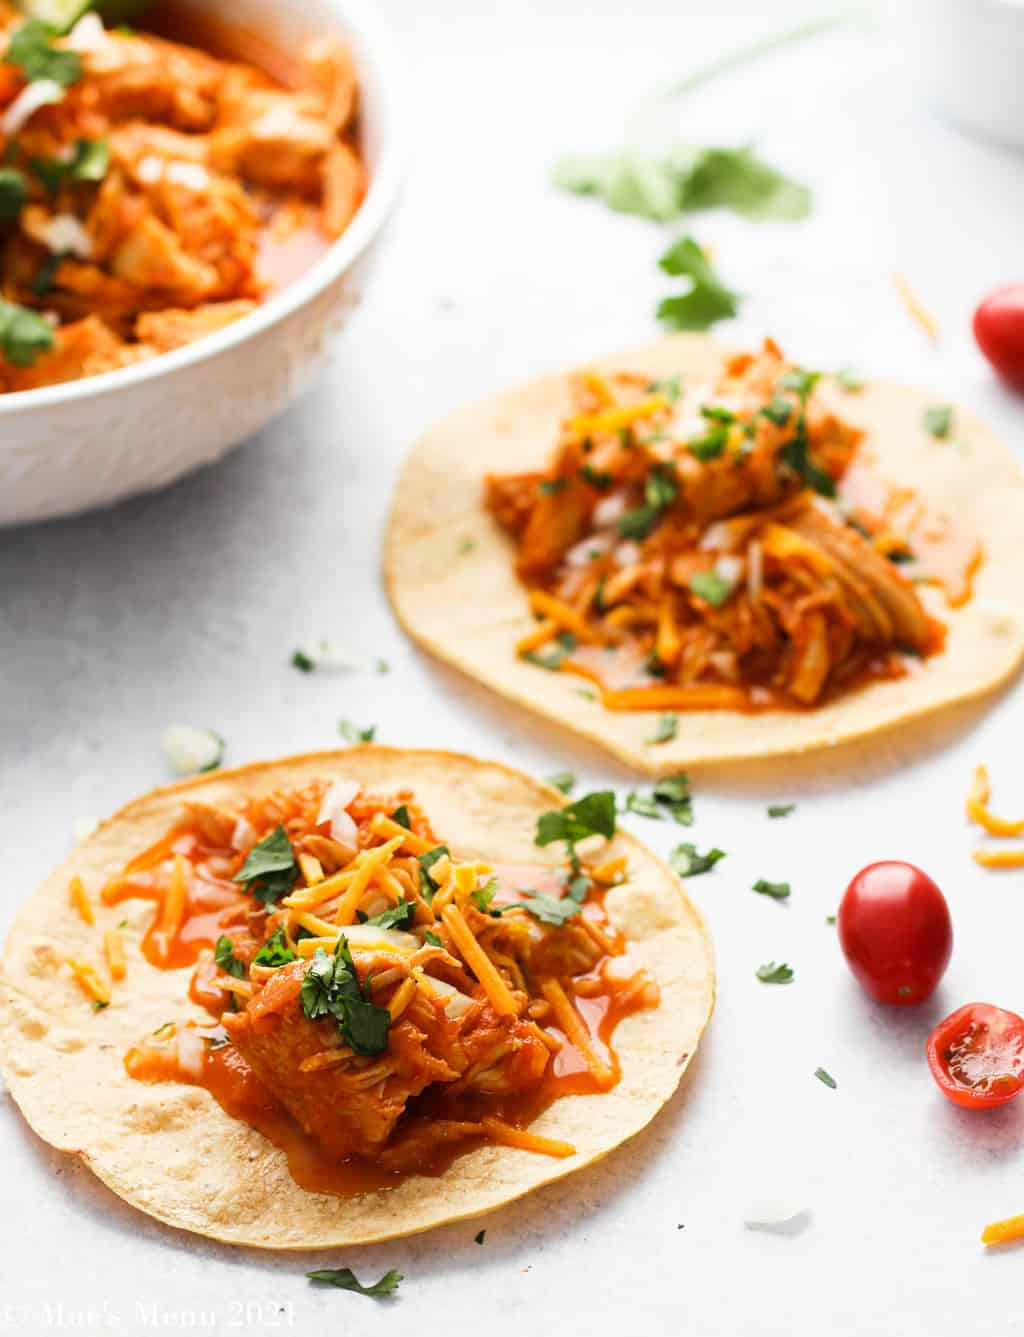 two instant pot chicken tacos on tortillas with tomatoes, cilantro, and onions